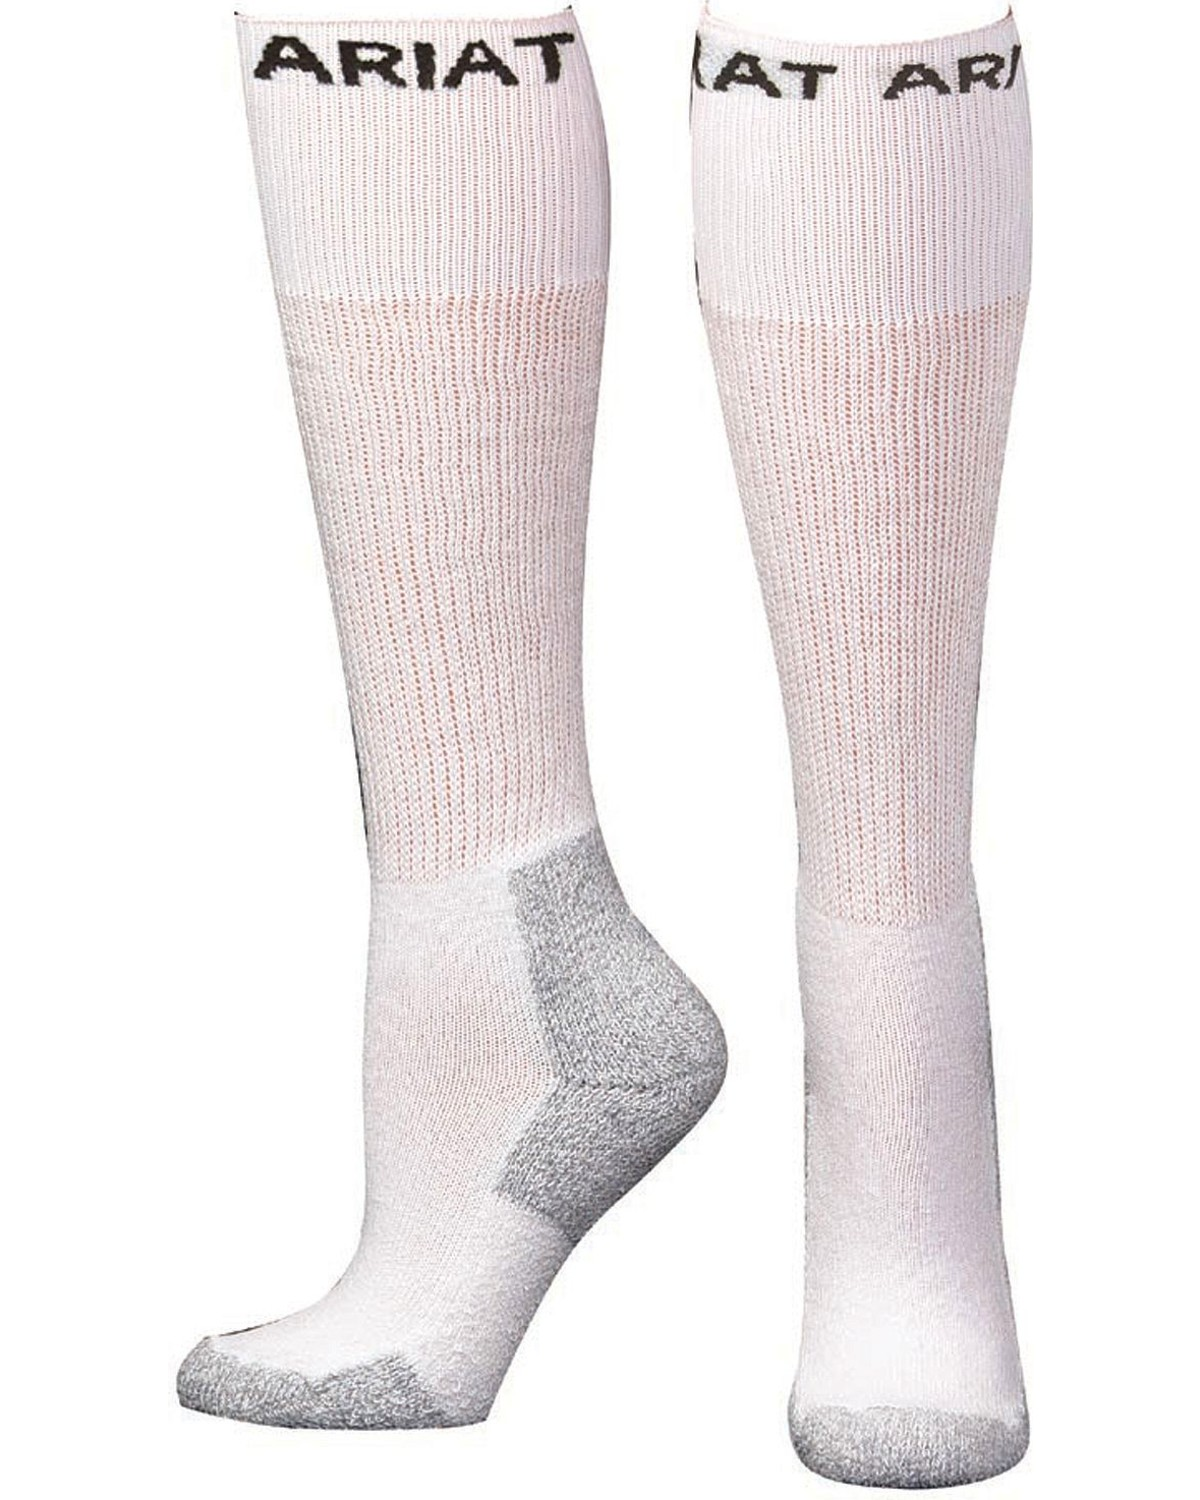 3pk wolverine leather work gloves extra large - Ariat Mens Over The Calf Socks 3 Pack White Hi Res